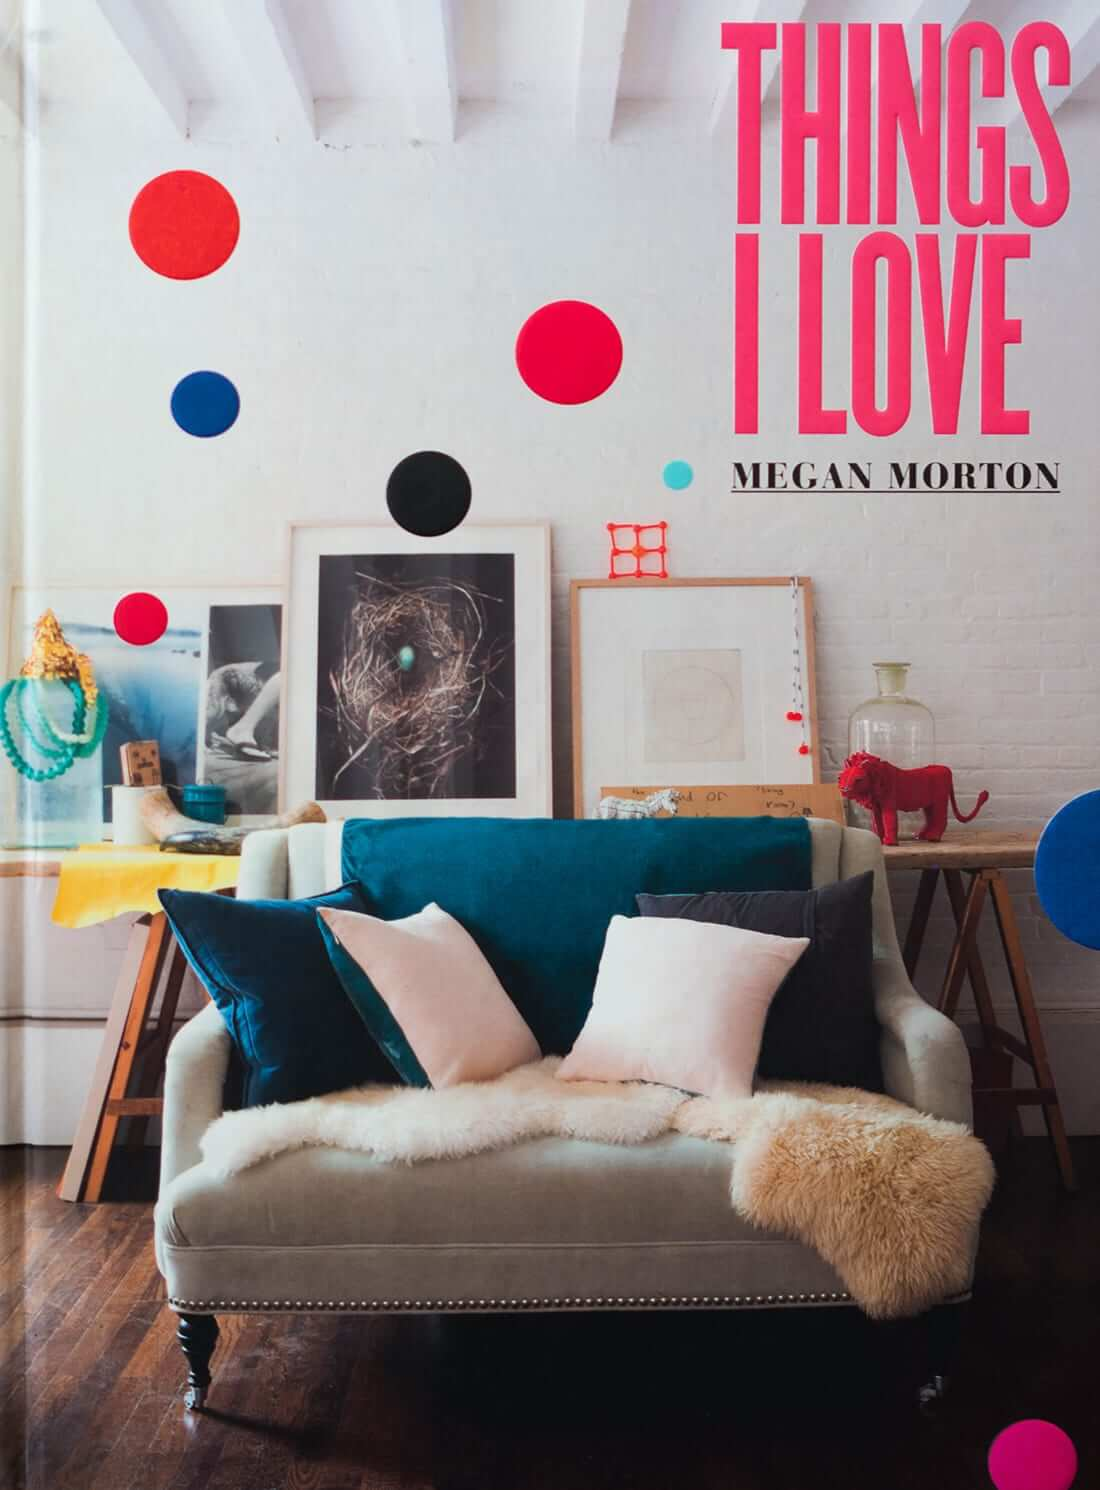 Megan Morton book, Things I love, Interview, Marylou Sobel, Interior Design, Sydney, Eastern Suburbs